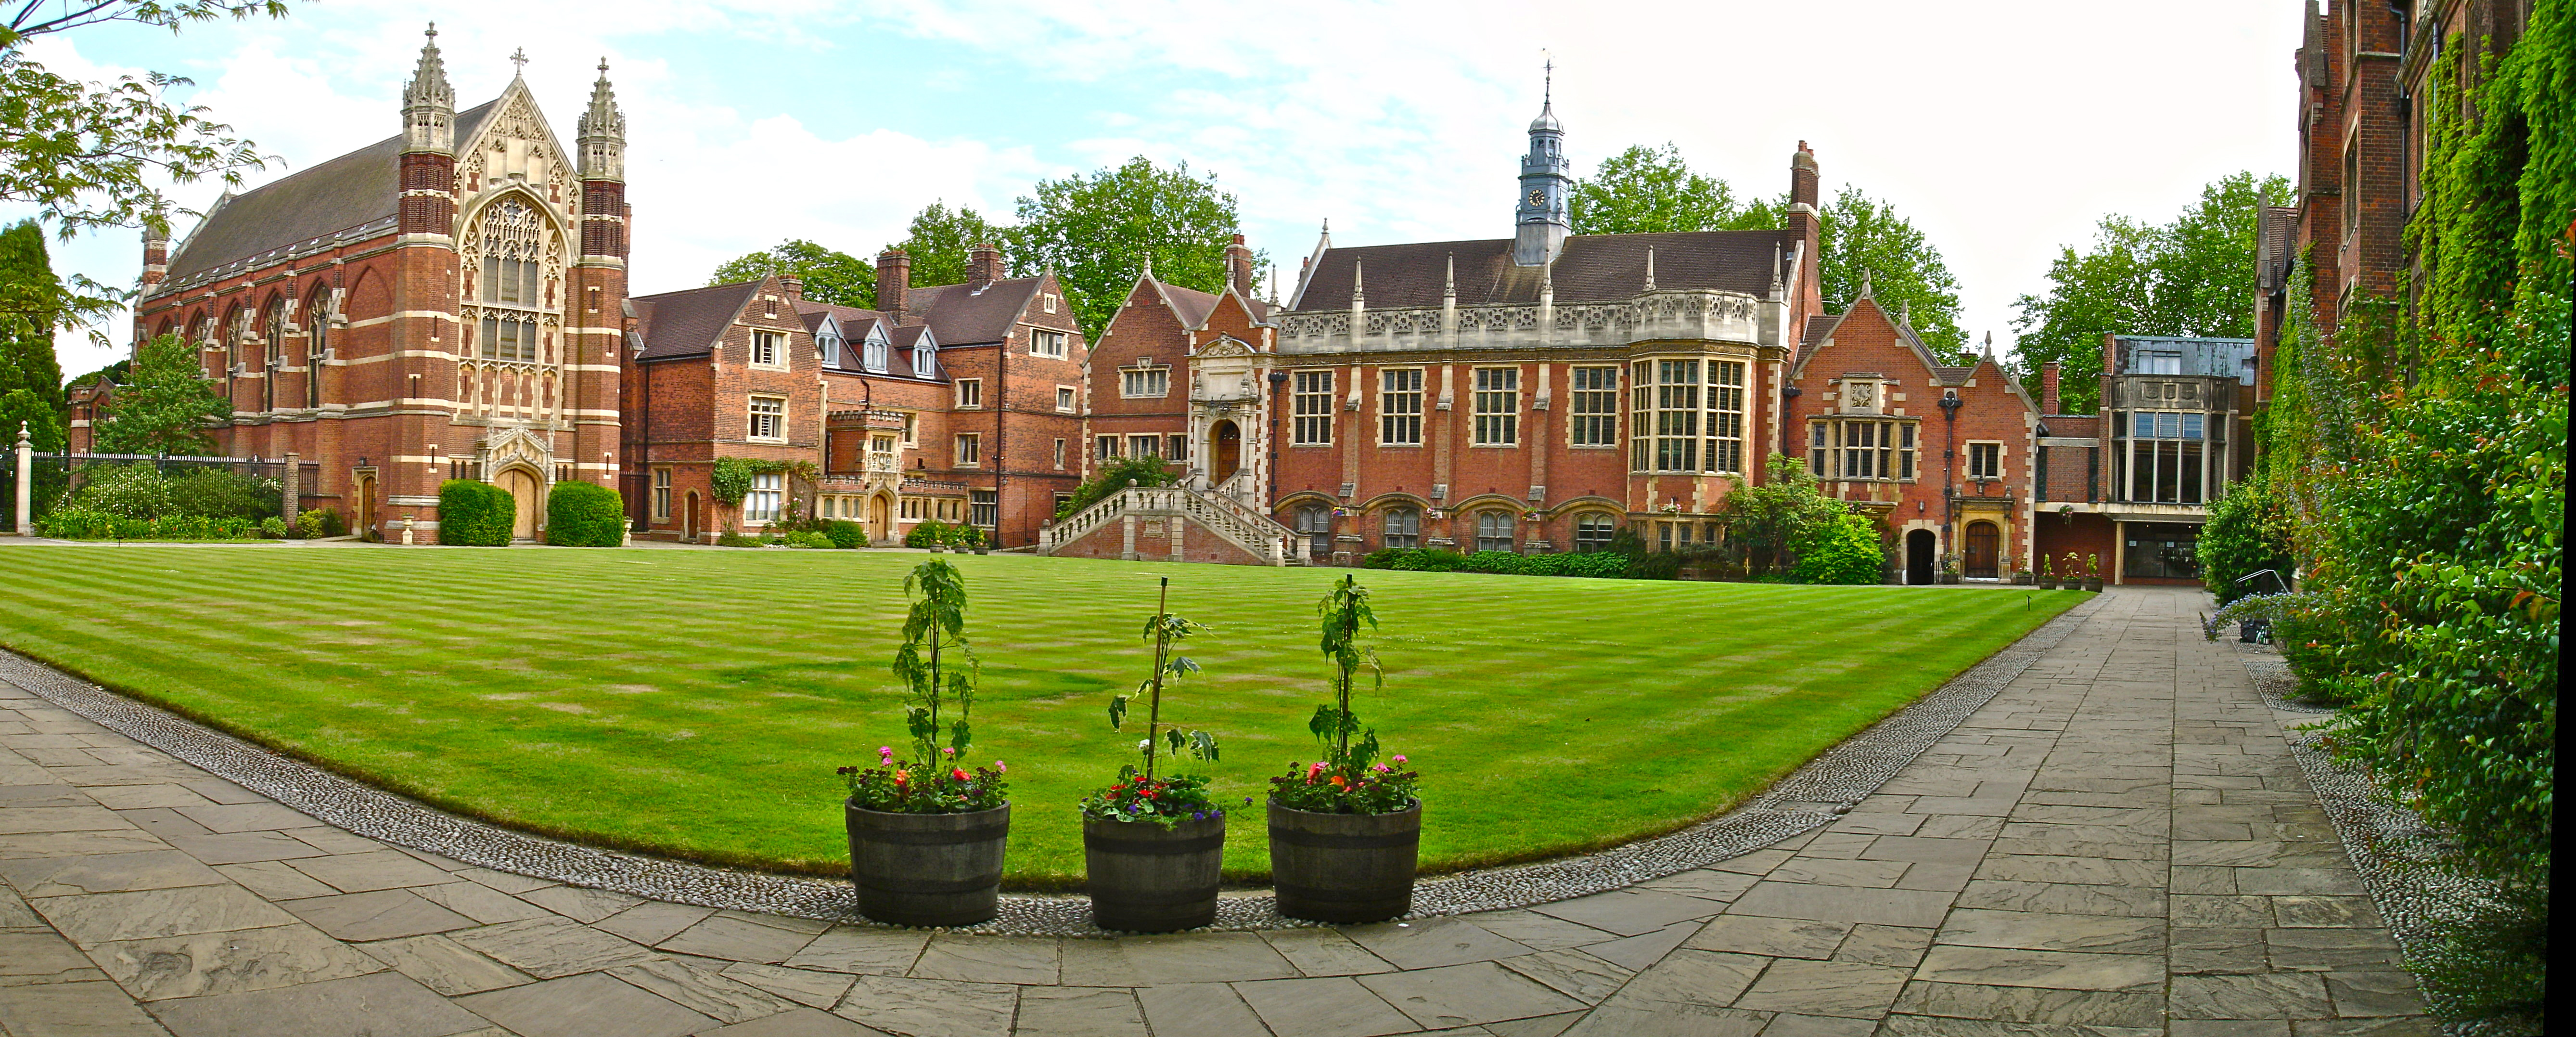 http://upload.wikimedia.org/wikipedia/commons/8/81/Selwyn_College_Old_Court_Panorama_from_North-West_corner.jpg